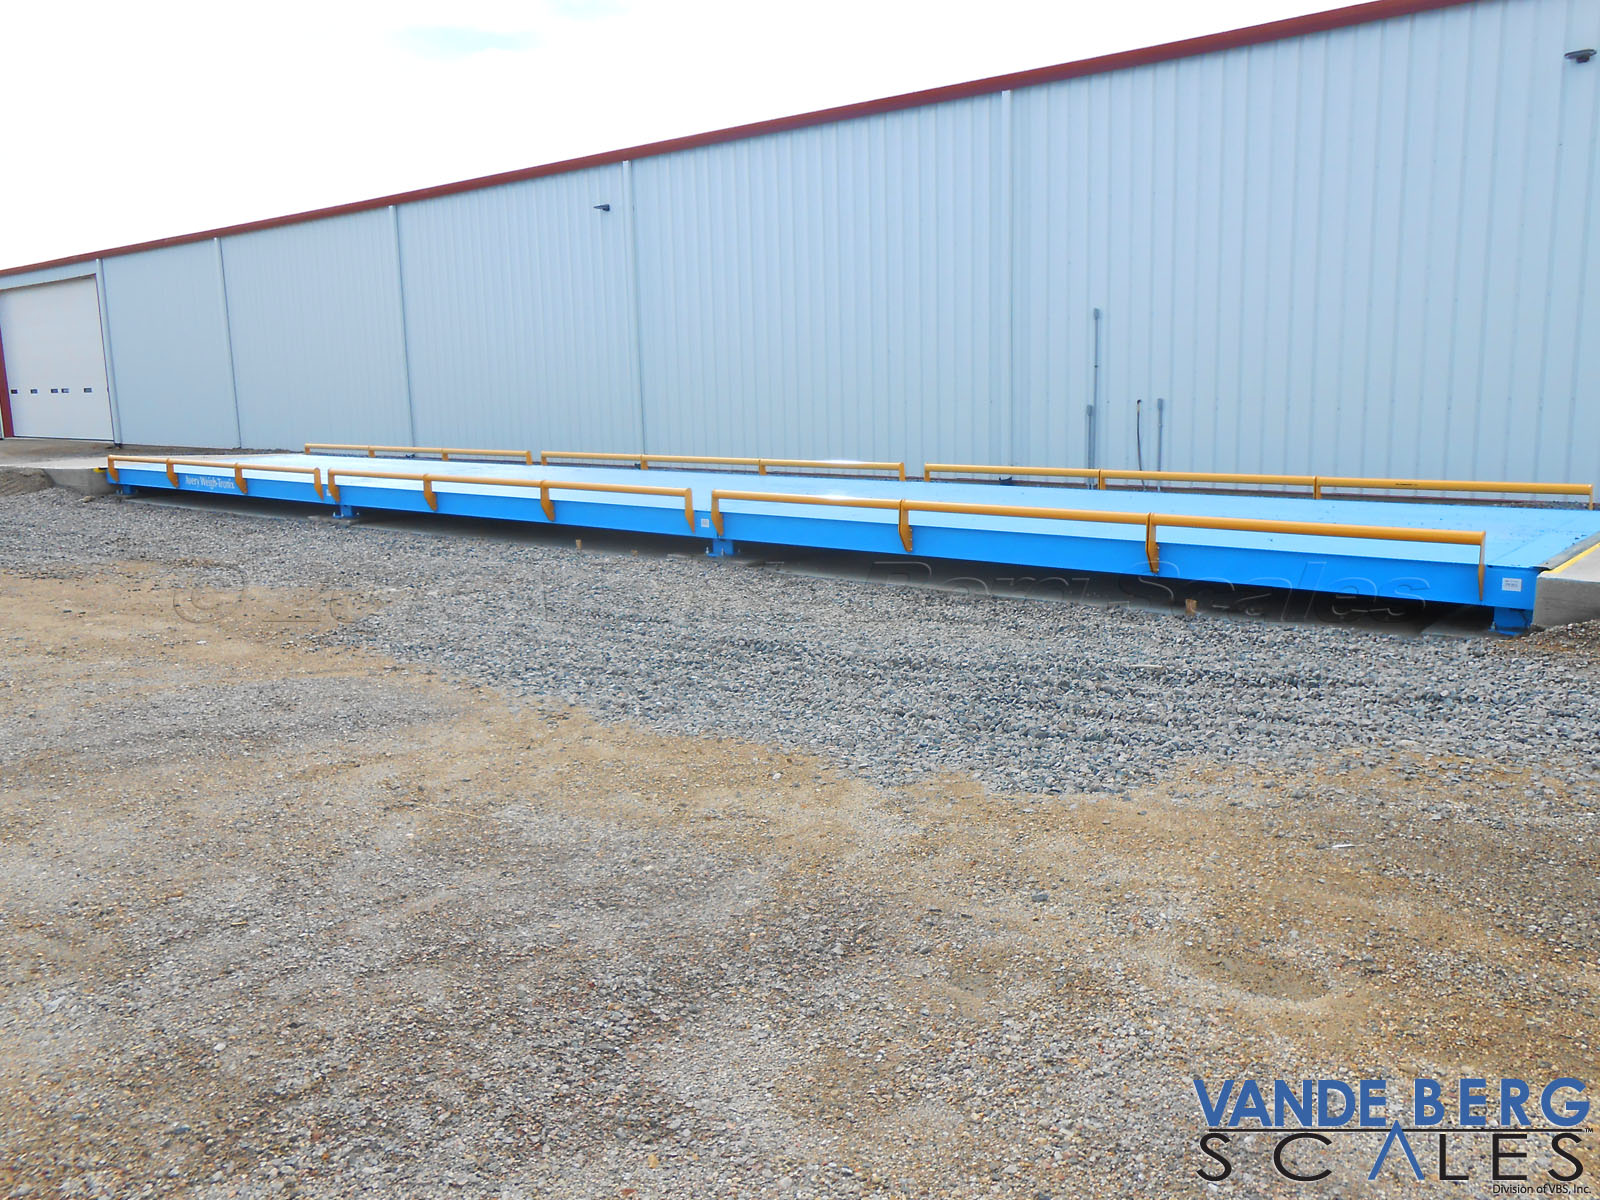 Pitless truck scale next to a warehouse. The convenience of the scale ensures the operator does not exceed road weight limits.